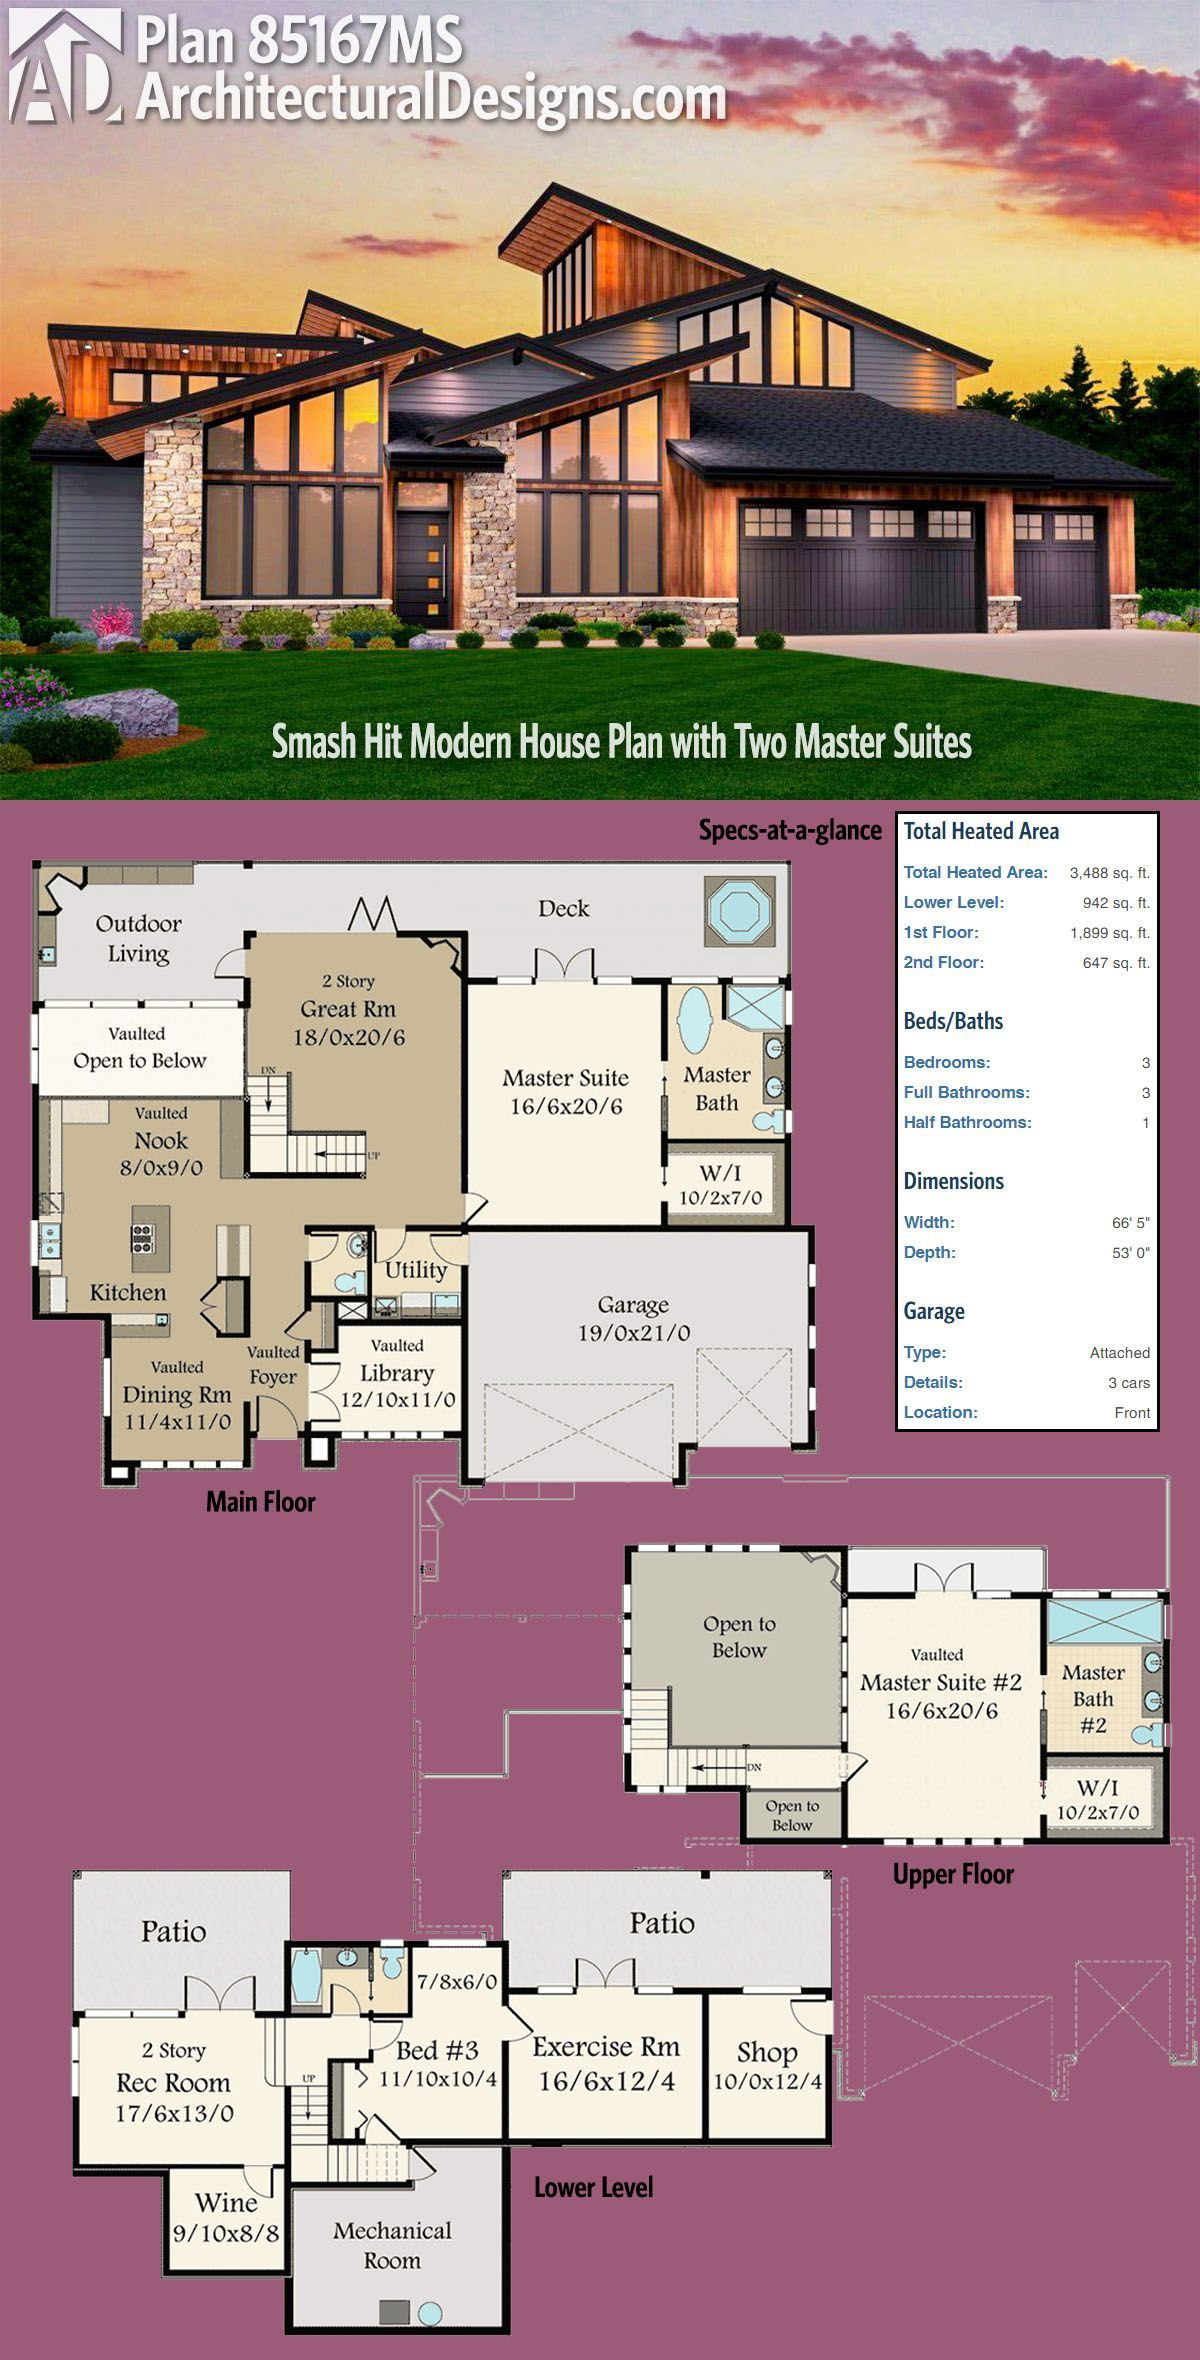 Houseplans with 2 master bedrooms  Plan MS Smash Hit Modern House Plan with Two Master Suites in